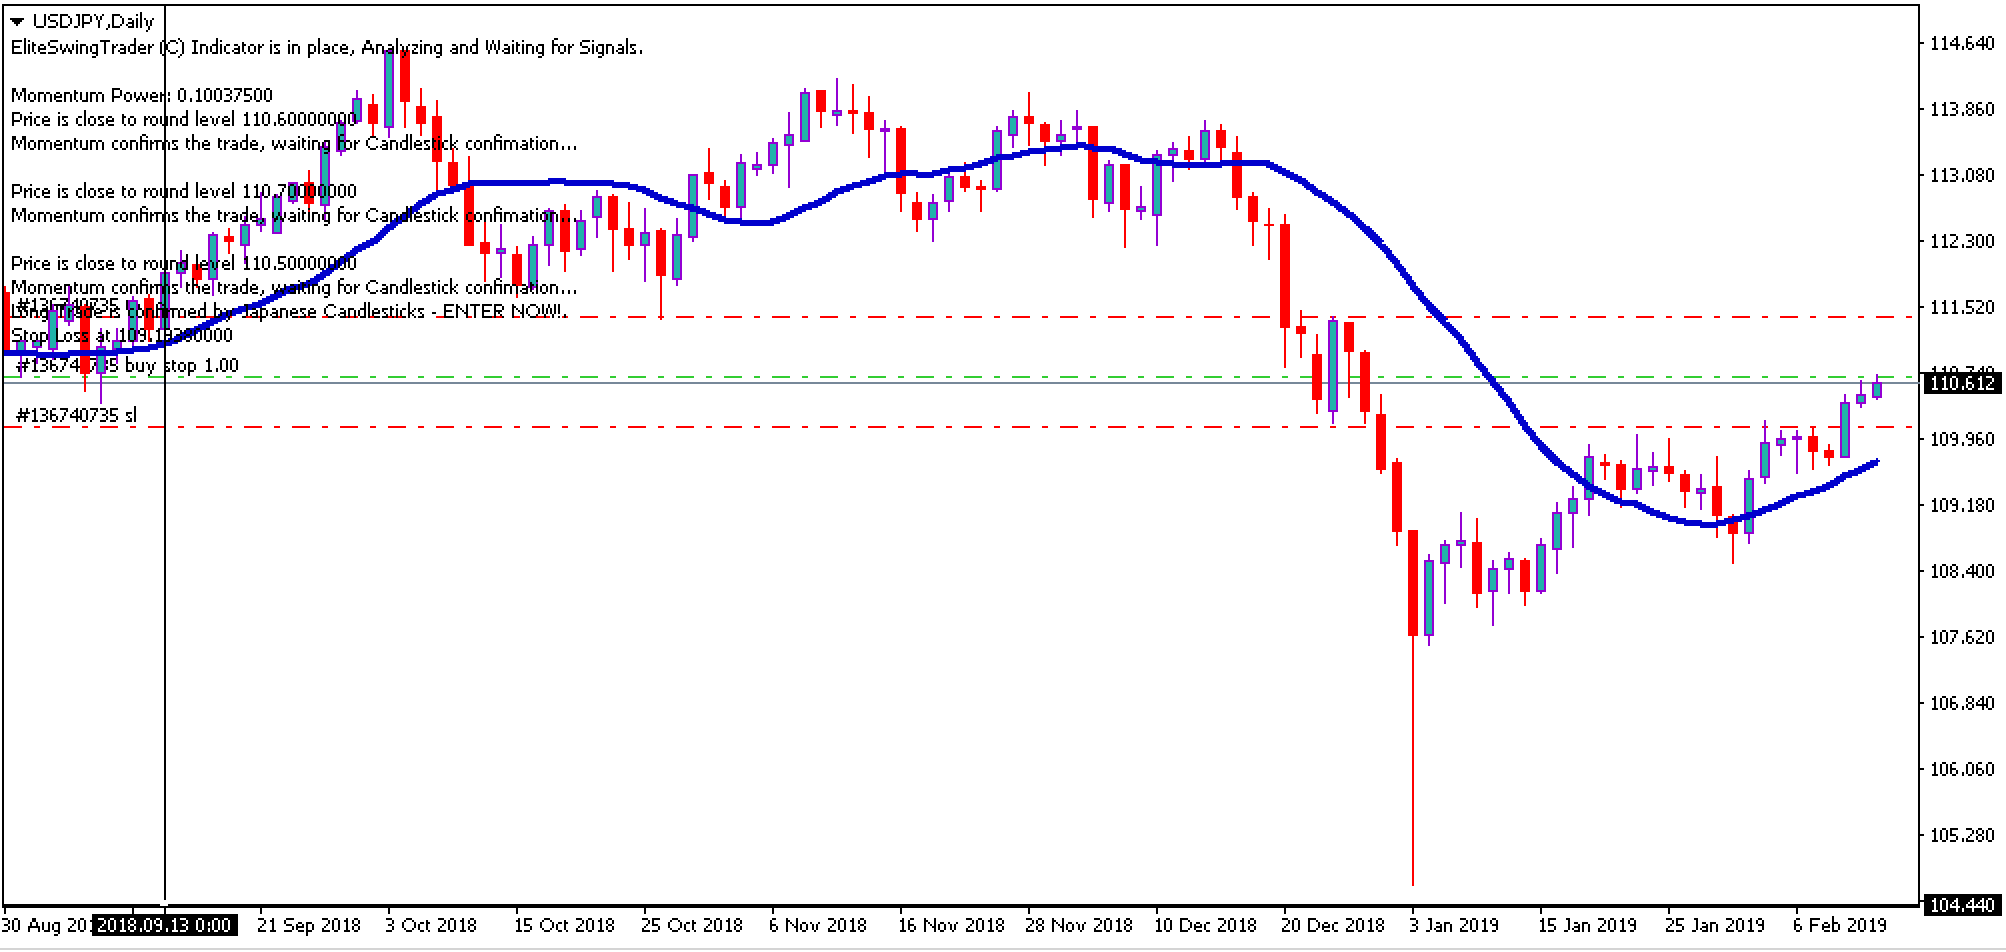 Swing Trading Signal USDJPY – 13th Feb 2019 Daily Chart